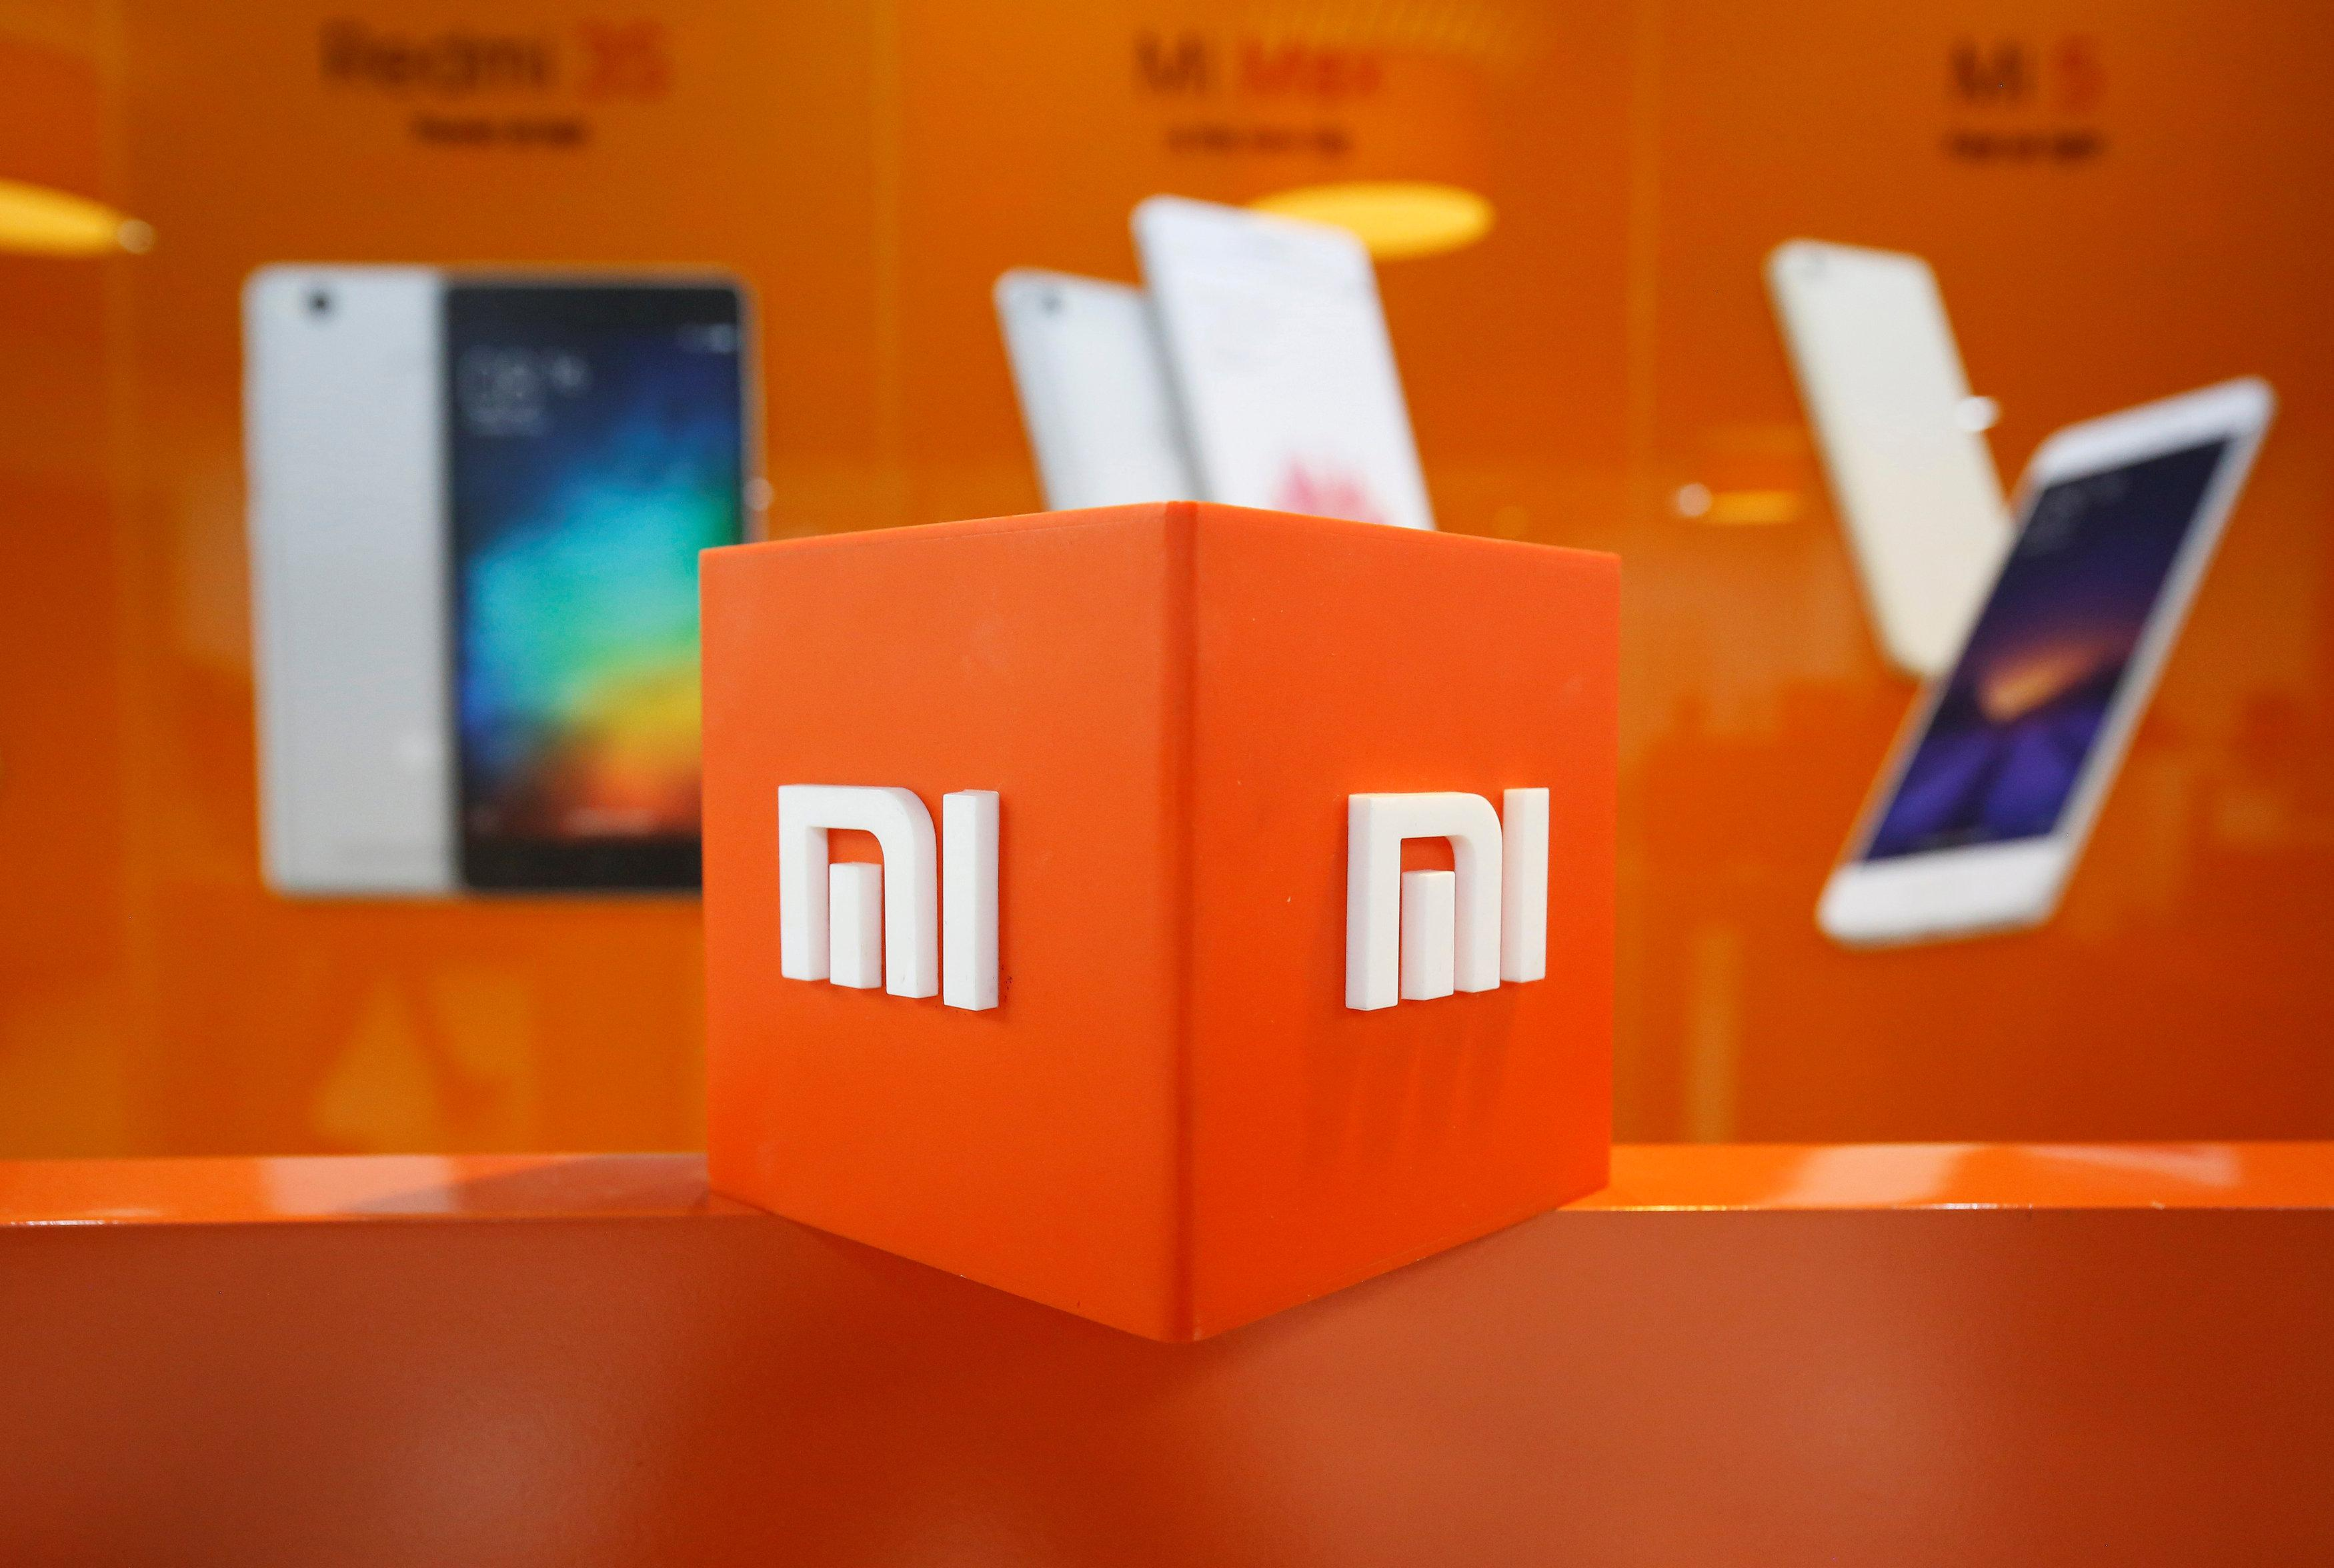 The logo of Xiaomi is seen inside the company's office in Bengaluru, India January 18, 2018. Picture taken January 18, 2018. Abhishek N. Chinnappa/File photo